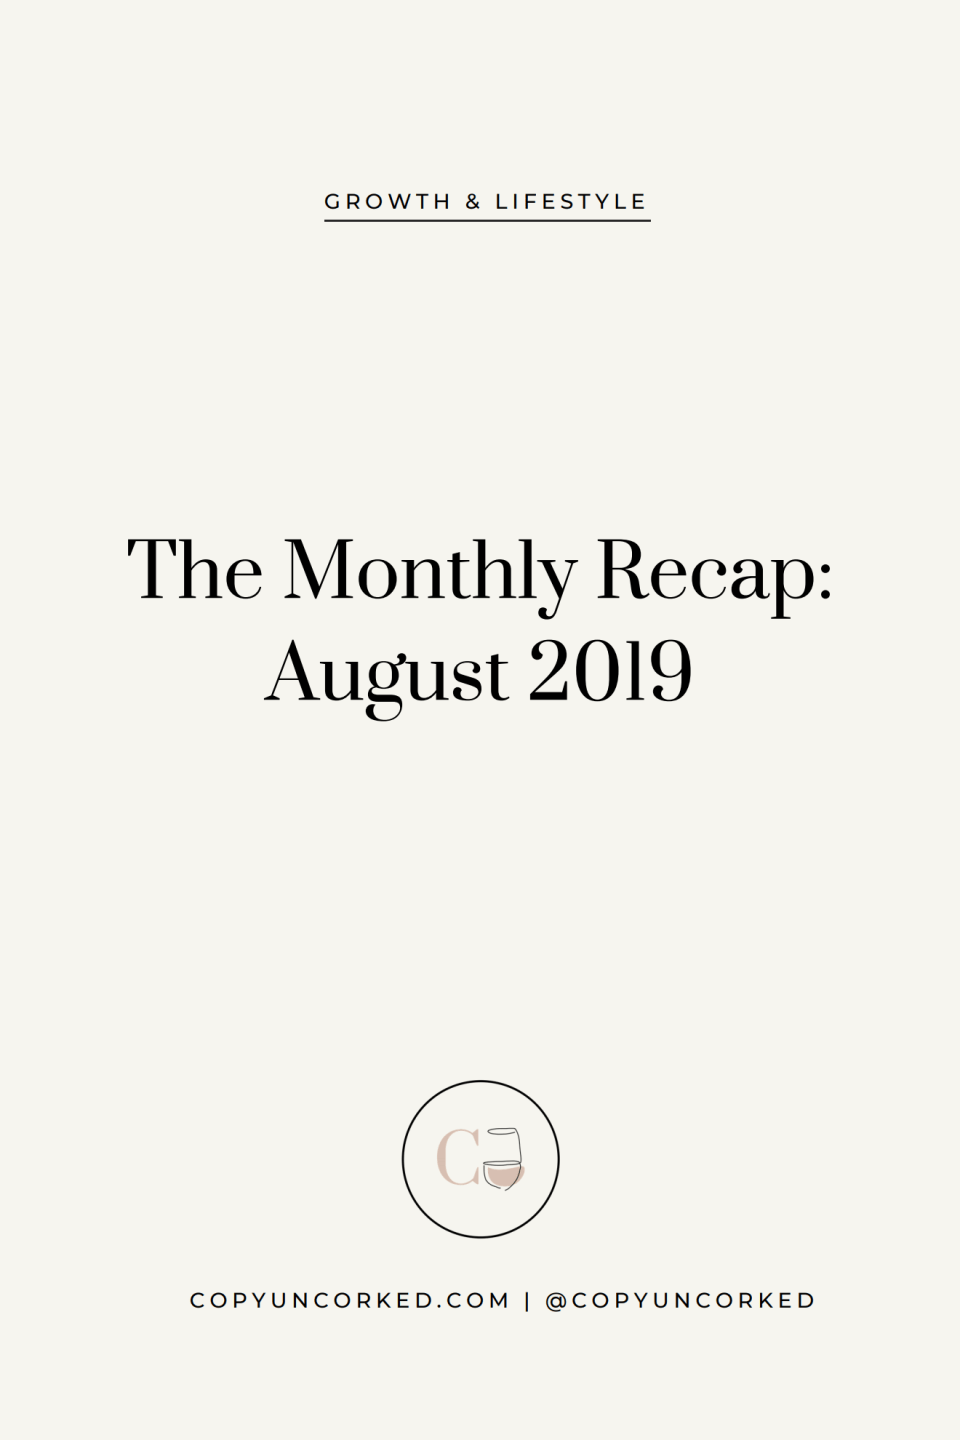 The Monthly Recap: August 2019 - copyuncorked.com